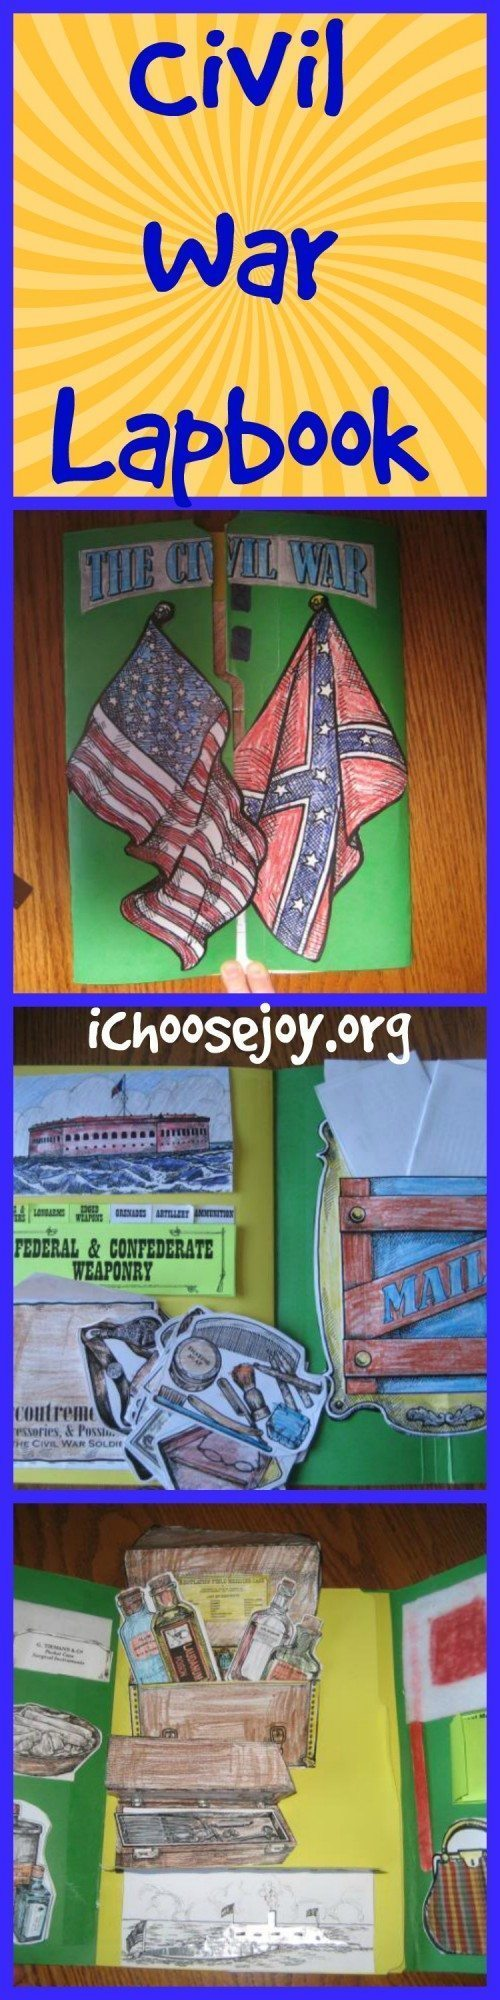 Civil War Lapbook